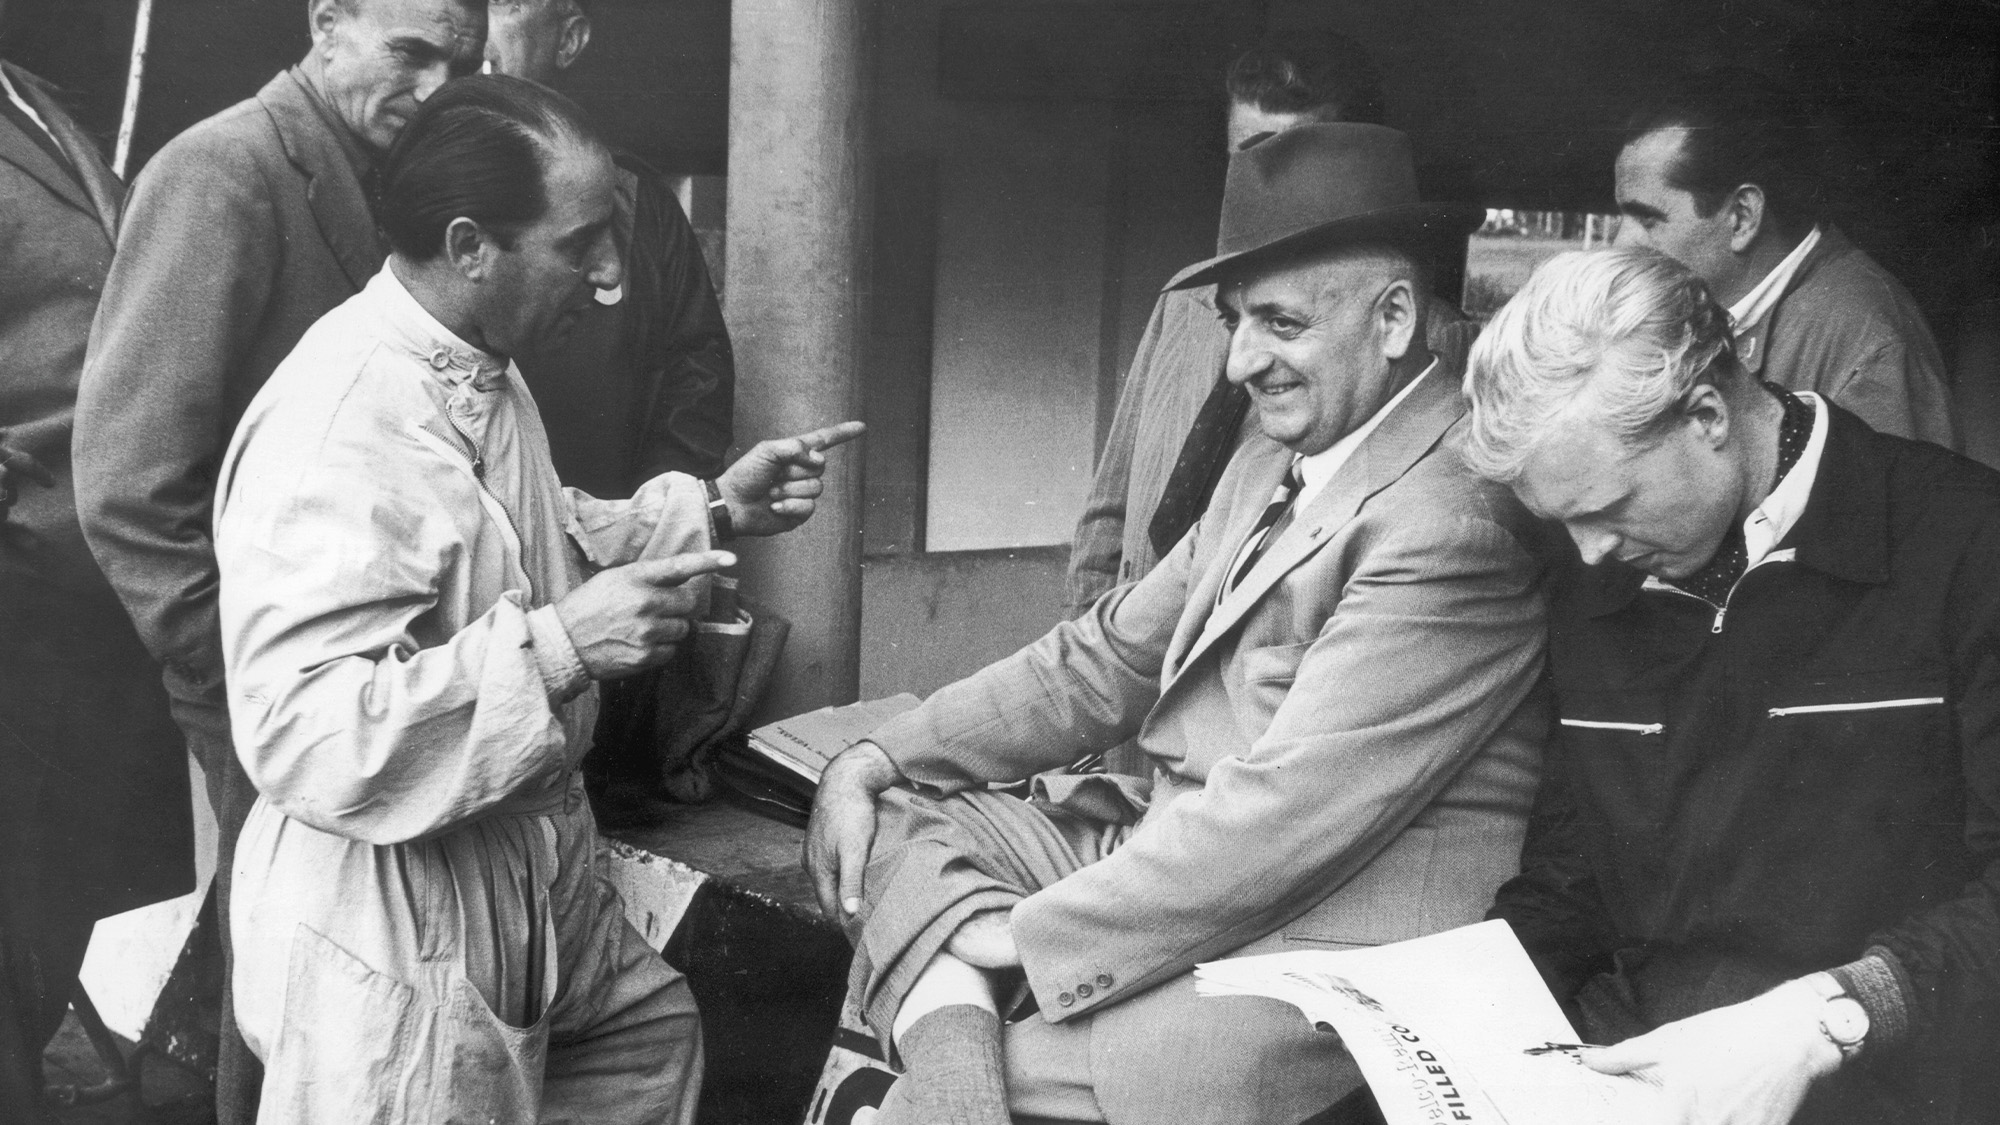 Alberto Ascari speaks with Enzo at Monza, while Mike Hawthorn reads alongside